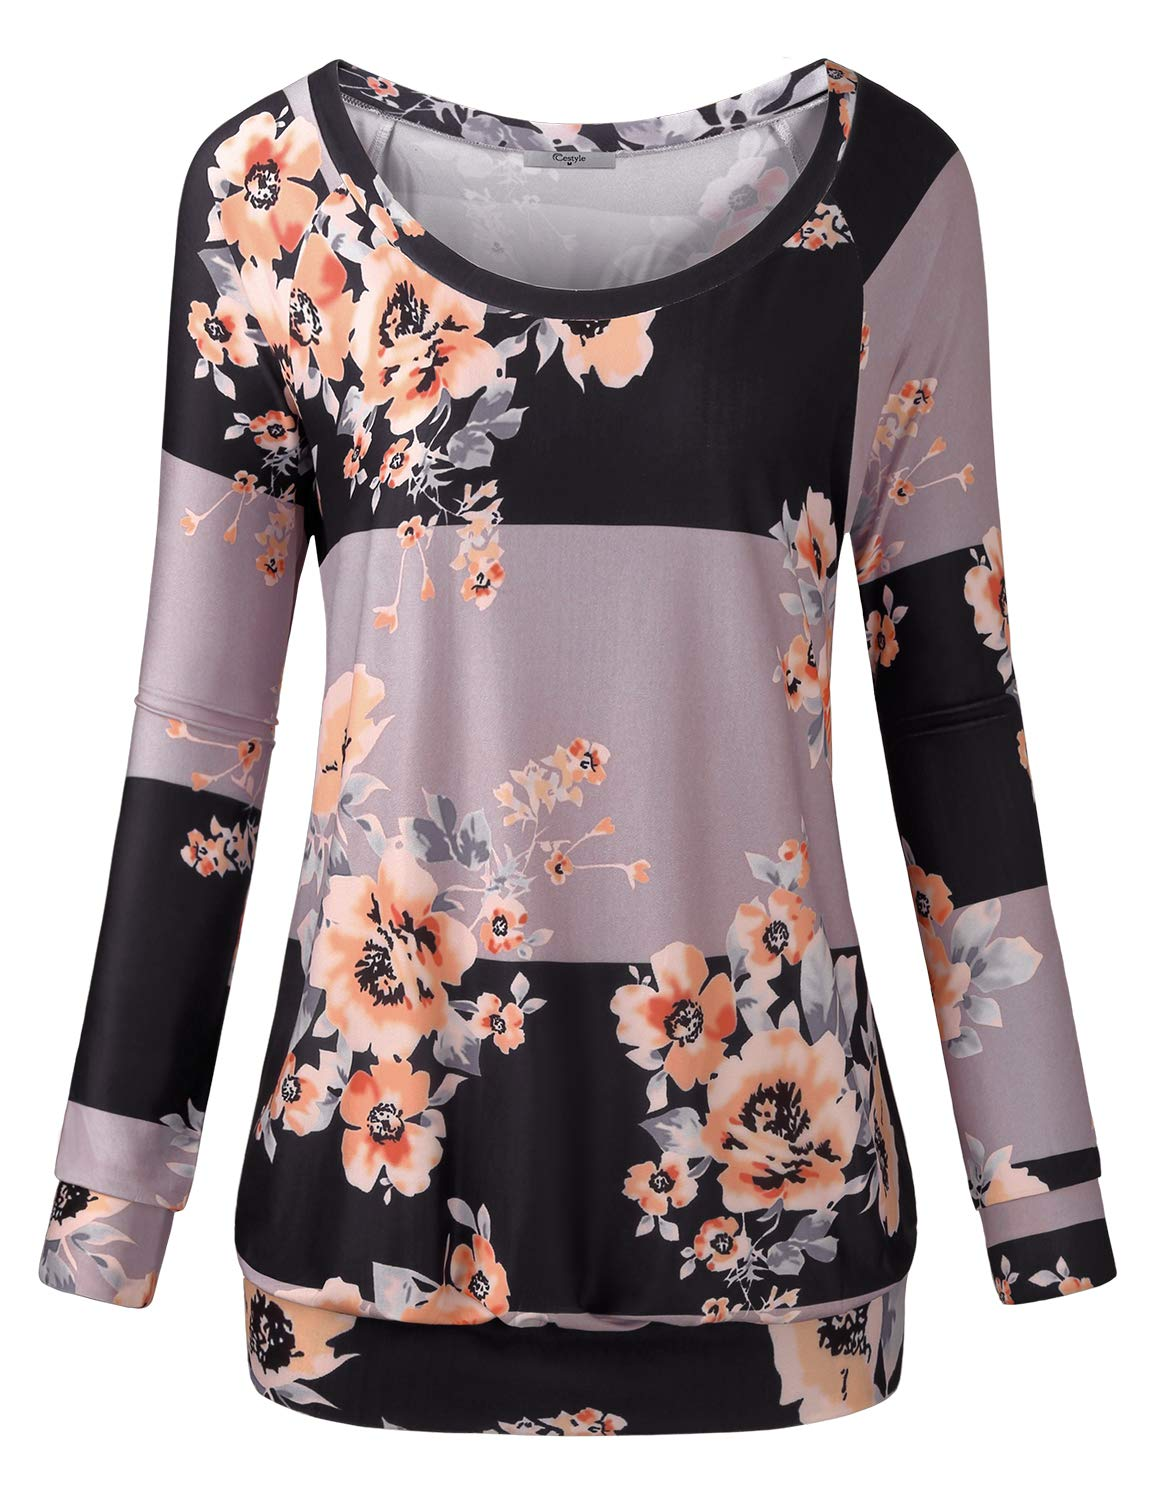 Cestyle Floral Pullovers Sweaters for Women,Ladies Crew Neck Full Sleeve Tunic Blouse Feminine Rolled Utility Sweatshirts Maternity Comfortable T-Shirts Travel Wear Striped Grey Large